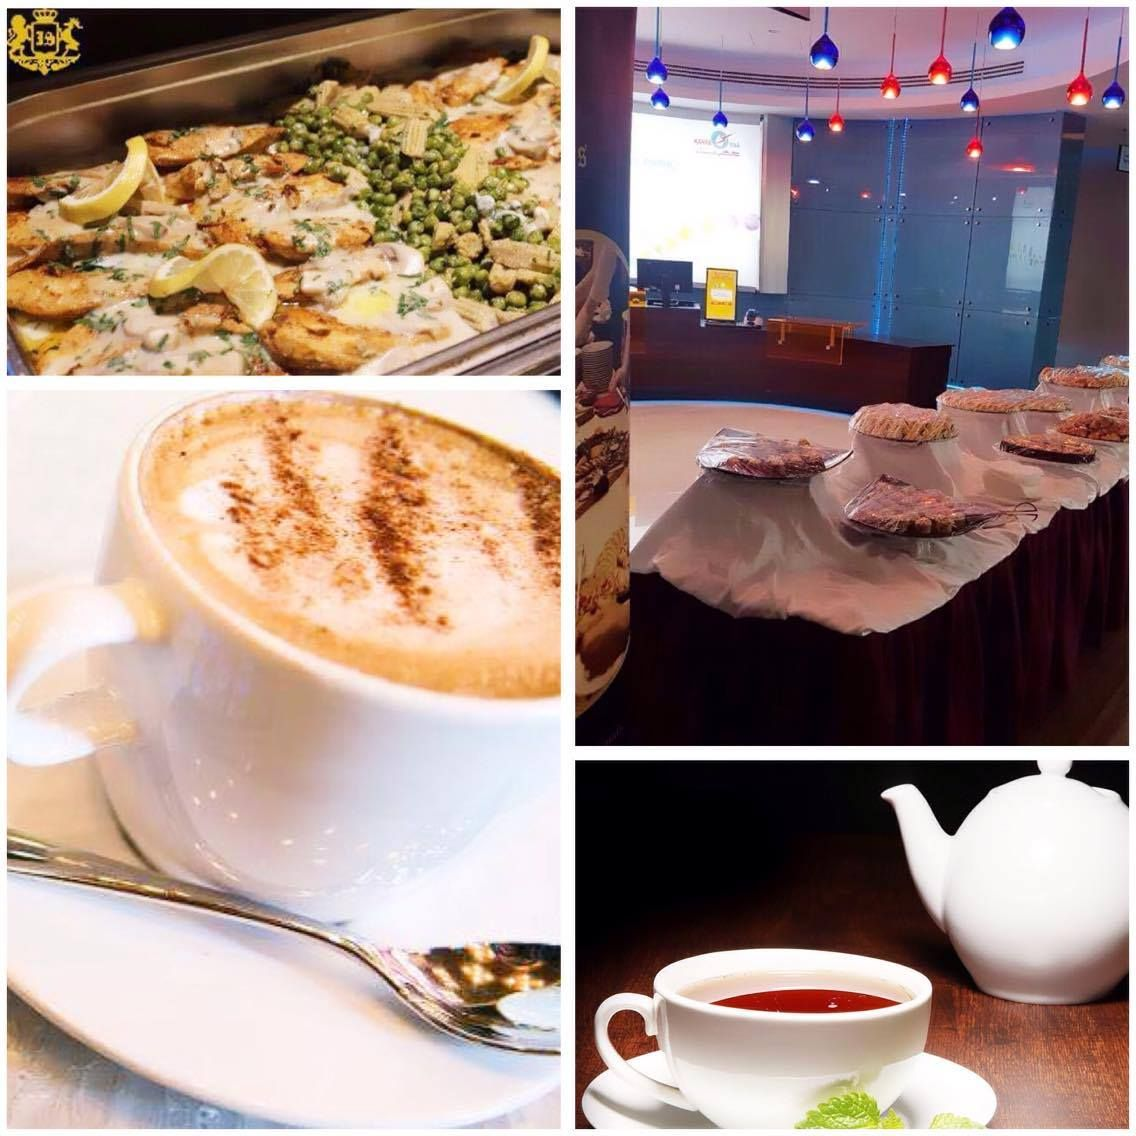 Rise Up Attack The Day With Enthusiasm Join Our Restaurant To Have Your Coffee Taste Our Bakery Or Maybe A Cup Of Tea To S Tableware Restaurant Glassware